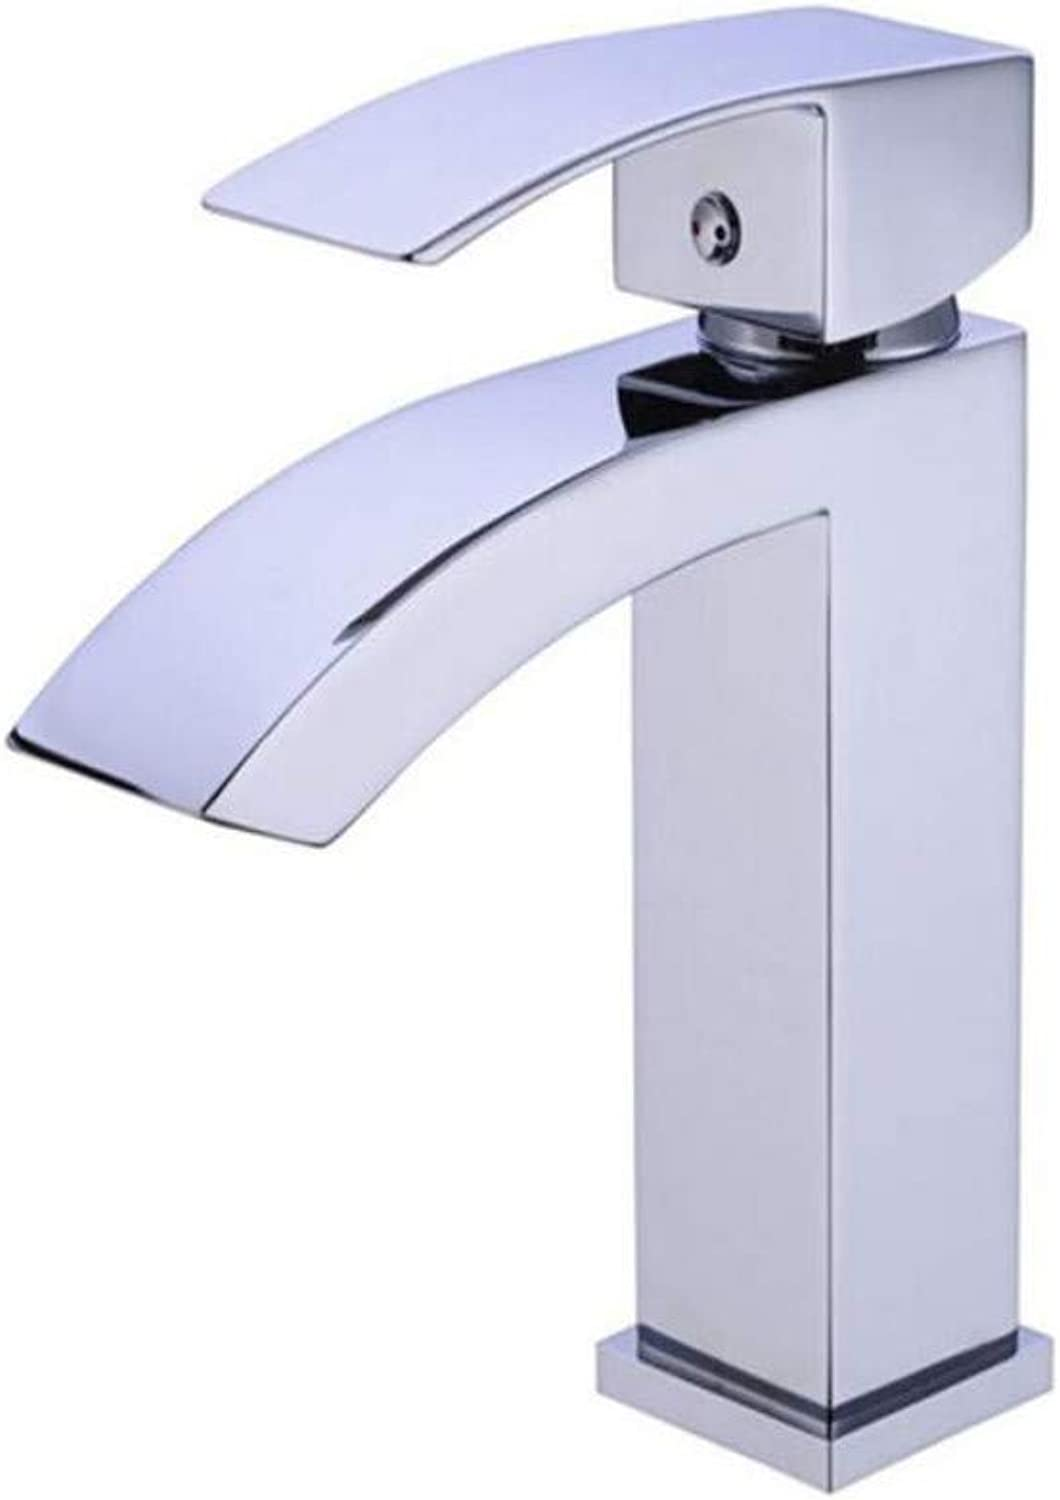 Faucet Lead-Free Square Innovationfaucet Deck Mounted Single Hole Single Handle Mixer